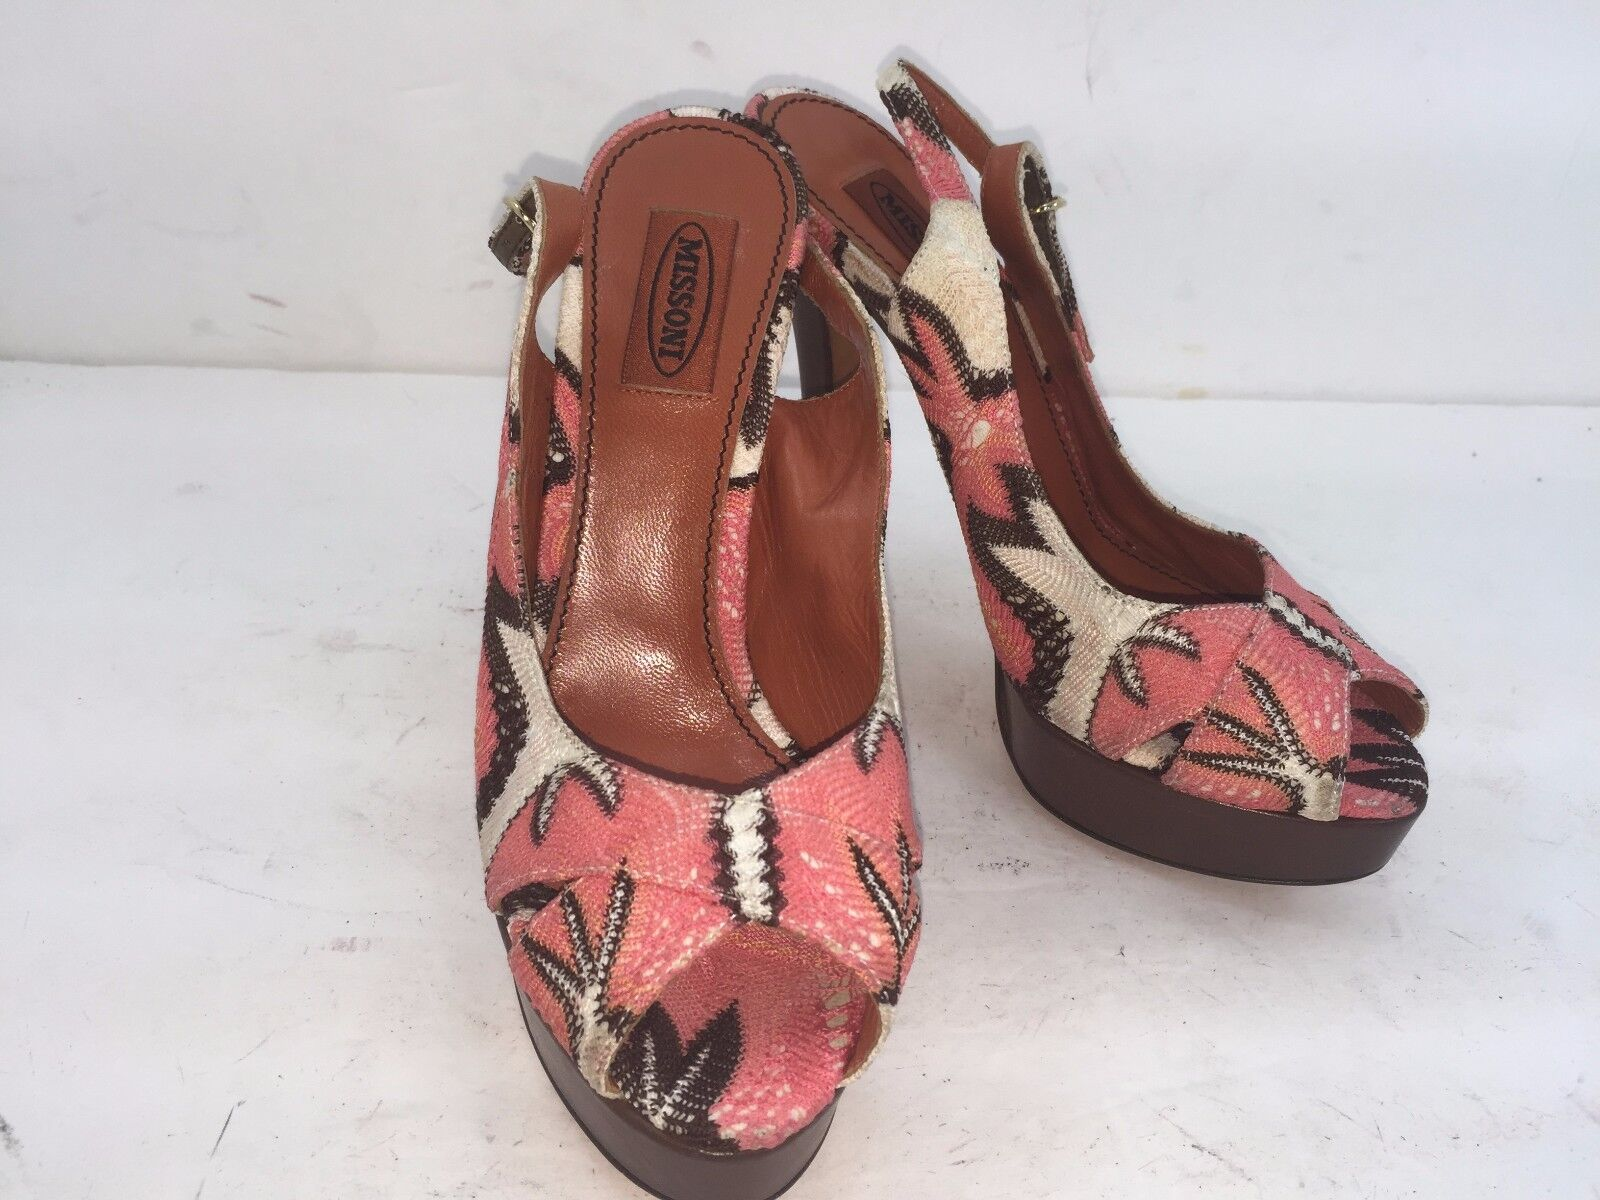 MISSONI HEEL PUMP SIZE 36.5 NEW MSRP MEDE IN ITALY MULTICOLOROT MSRP NEW 425 9a98d6